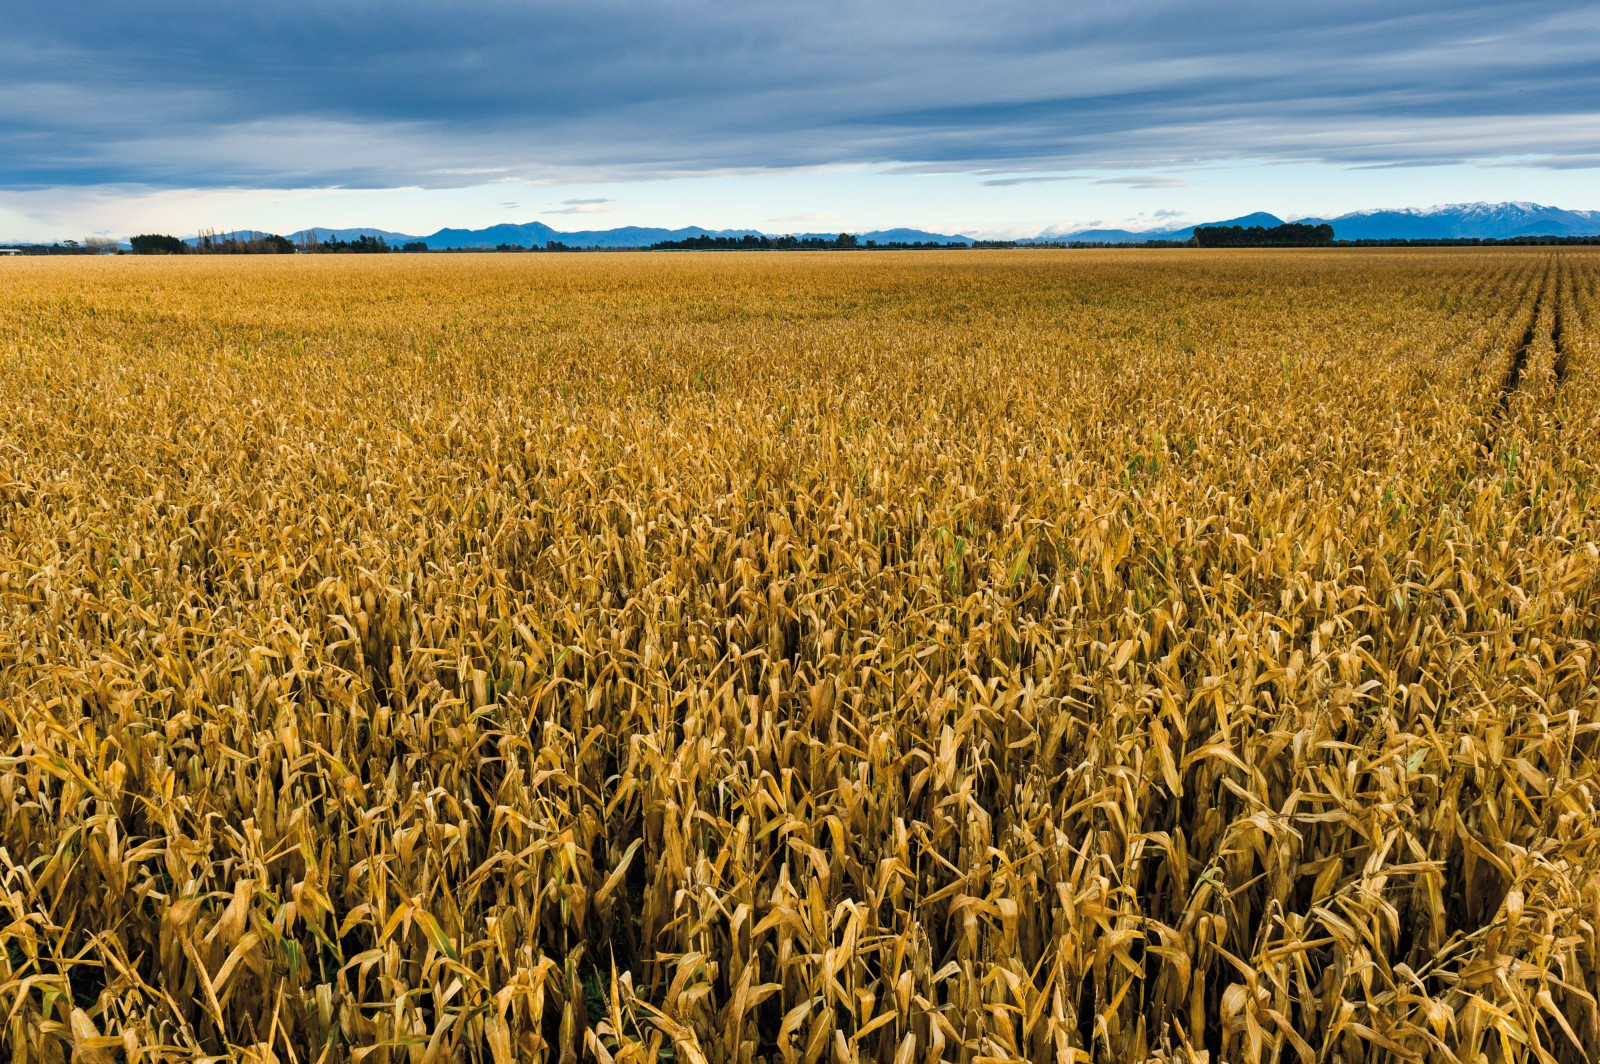 Canterbury is one of the best-suited regions in the country for growing cereals, such as maize, pictured. Cereals use less water, are more resource efficient and have less environmental impact than farming livestock, but there are other market forces at play. As milk products generate better returns and irrigation technology improves, land in Canterbury once devoted to cereal production is steadily being converted to dairy.